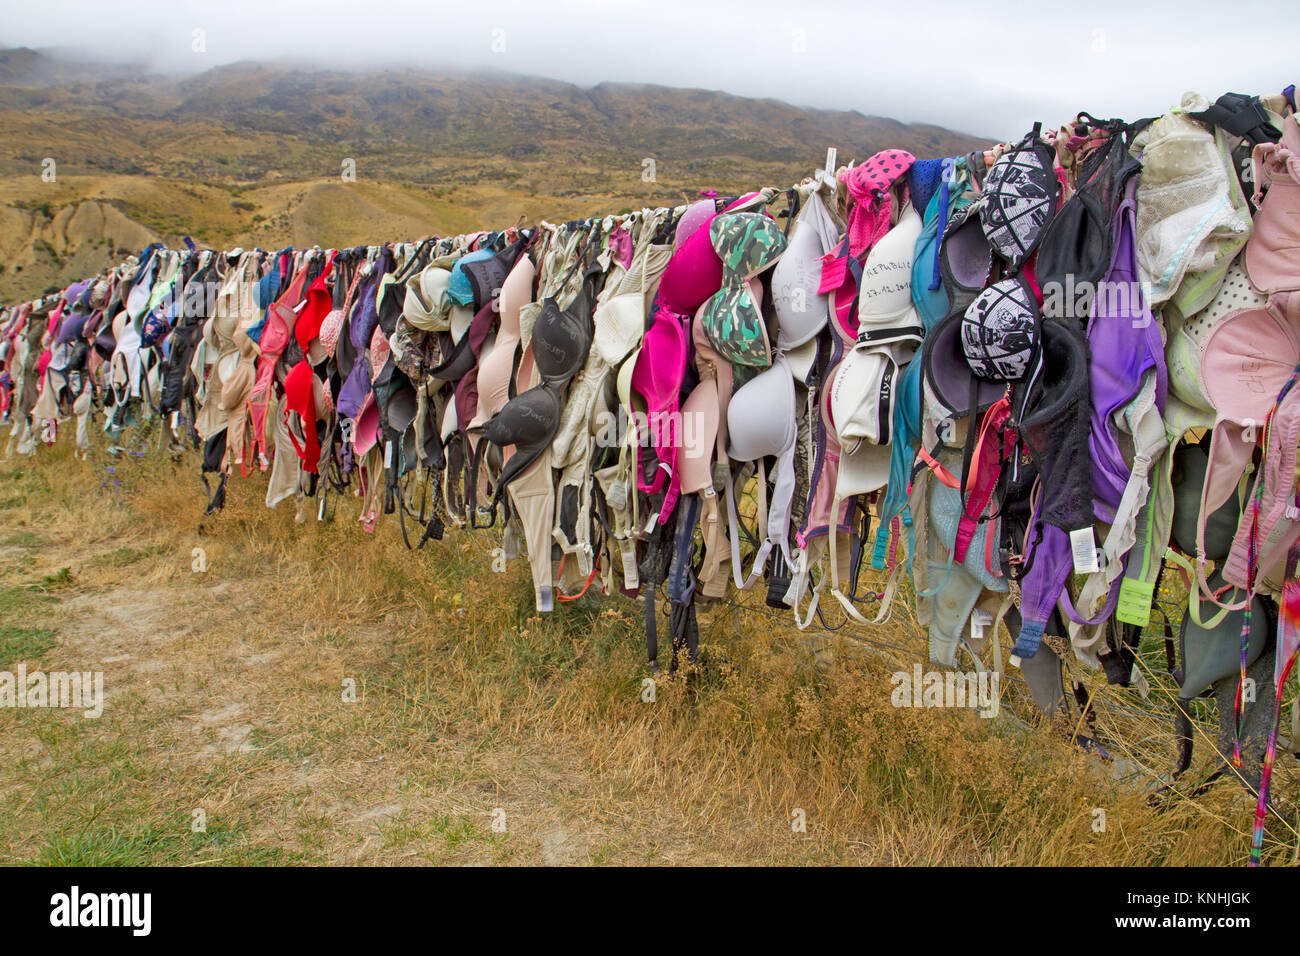 The Bra Fence at Cardrona - Stock Image